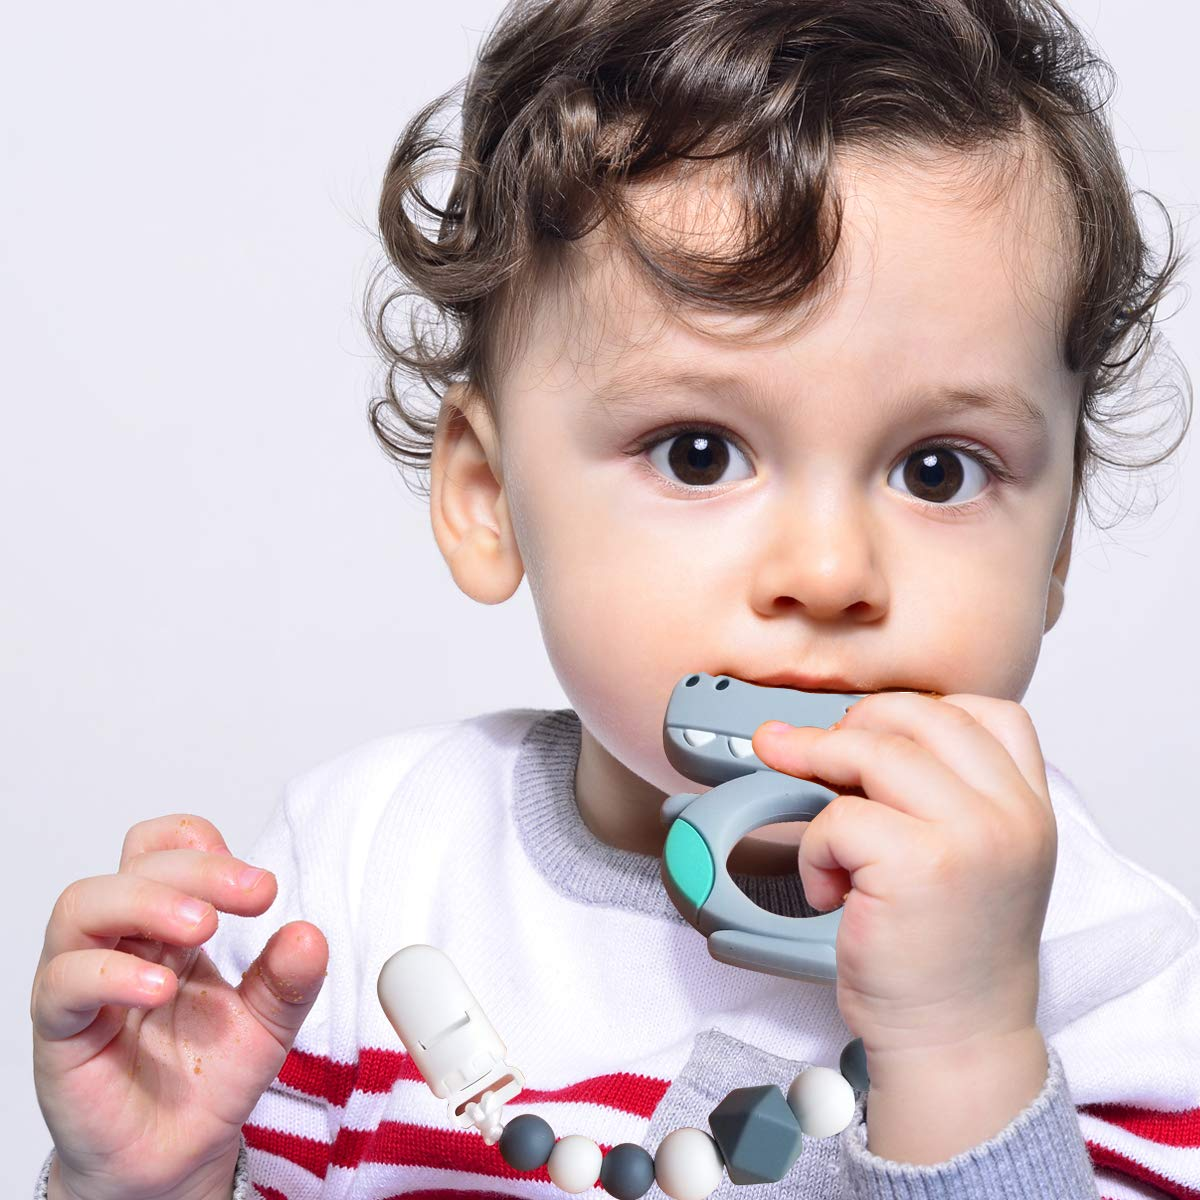 Baby Teether Toys with Teether Pacifier Clip Holder CANAY Baby Teething Toys Best BPA-Free Molar Teether Toys